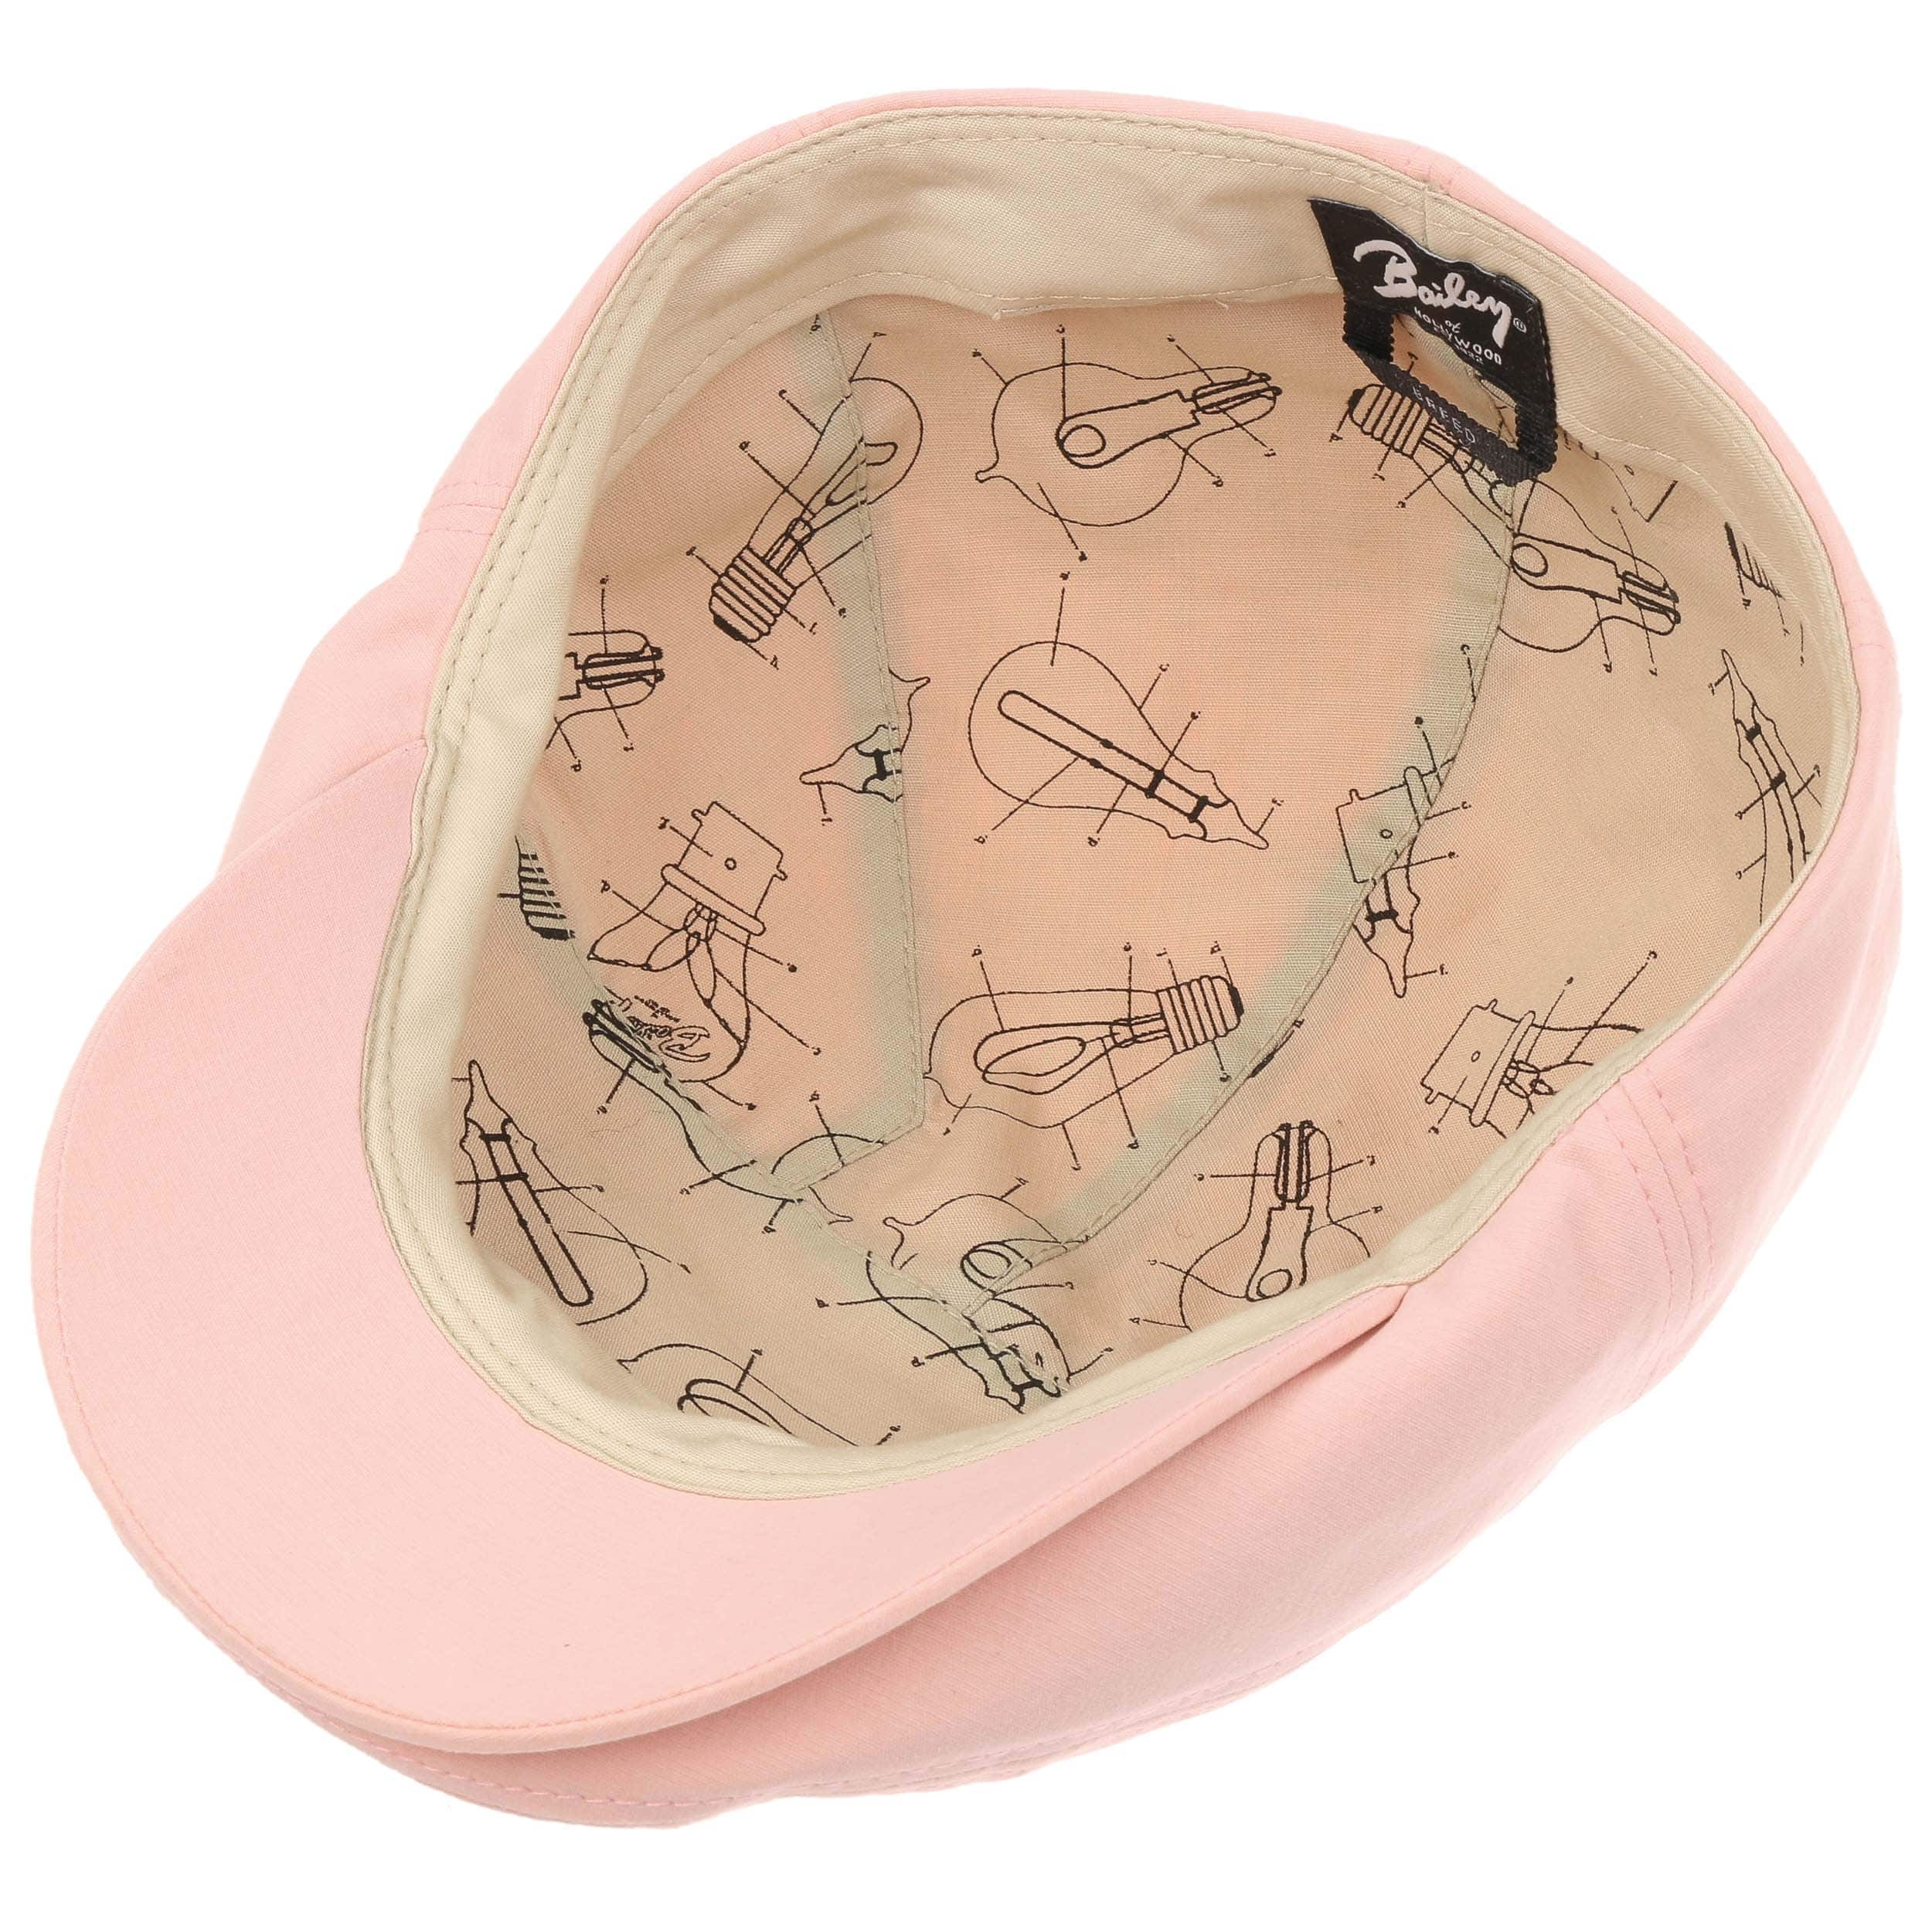 b02f79bb1b20 ... Keter Flat Cap by Bailey of Hollywood - rose 2 ...